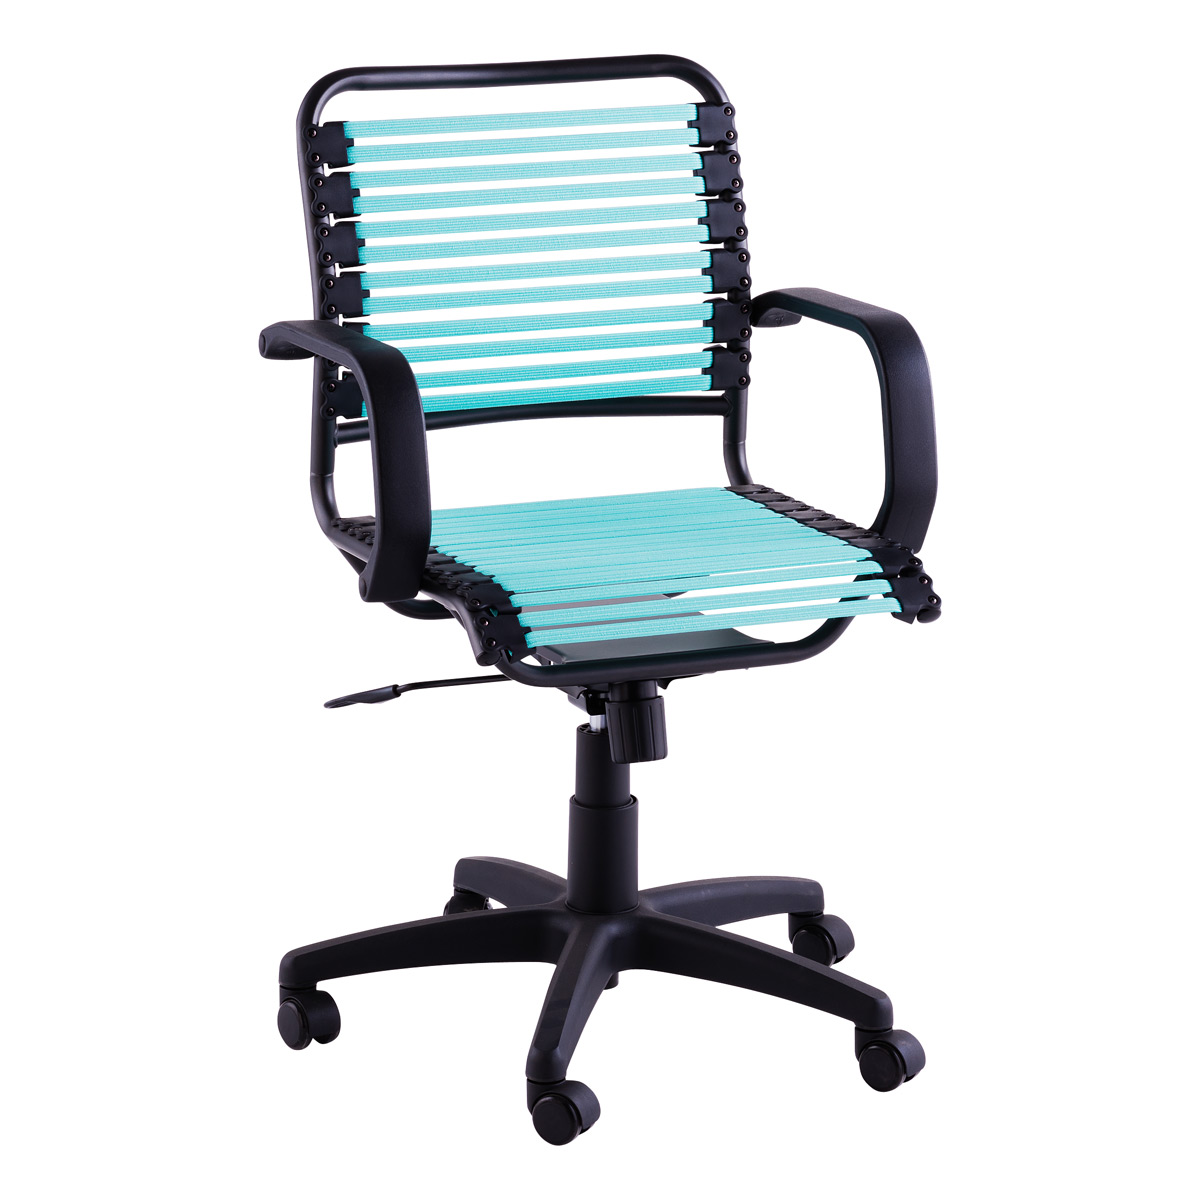 container store chair replica fermob luxembourg lounge turquoise flat bungee office with arms the